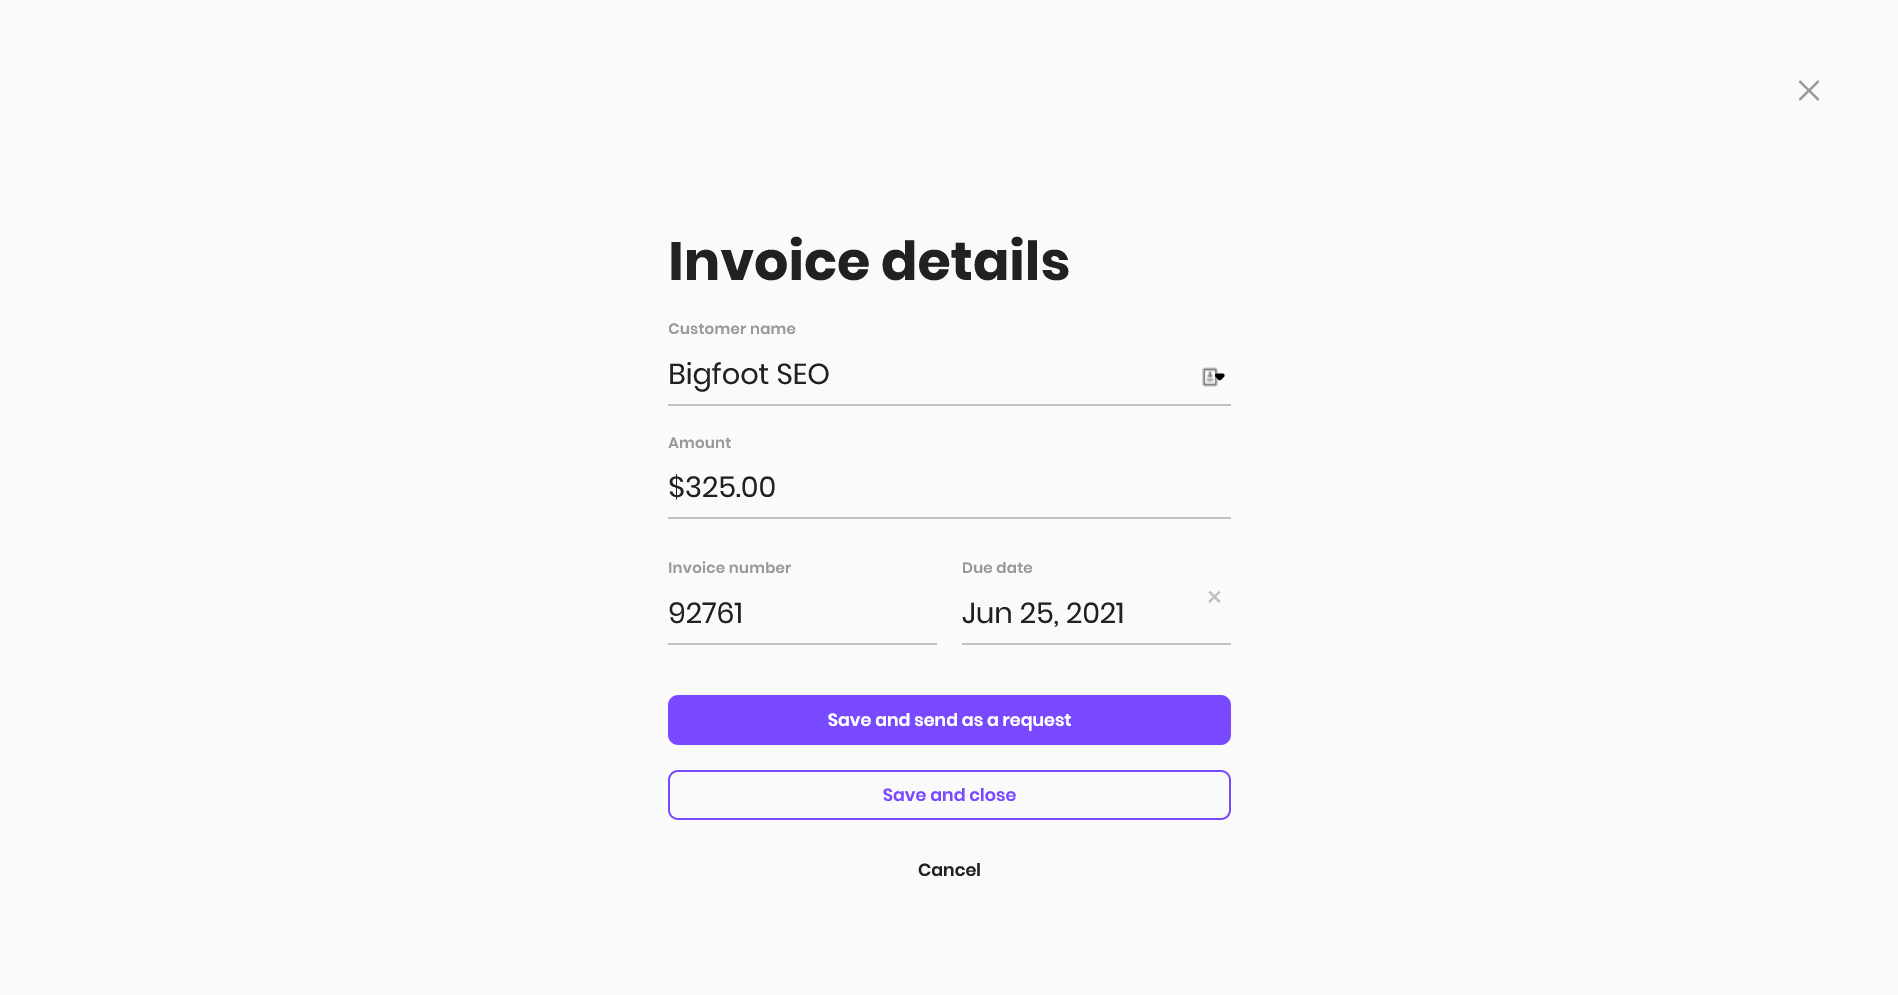 A Melio Payments INVOICE looks like this